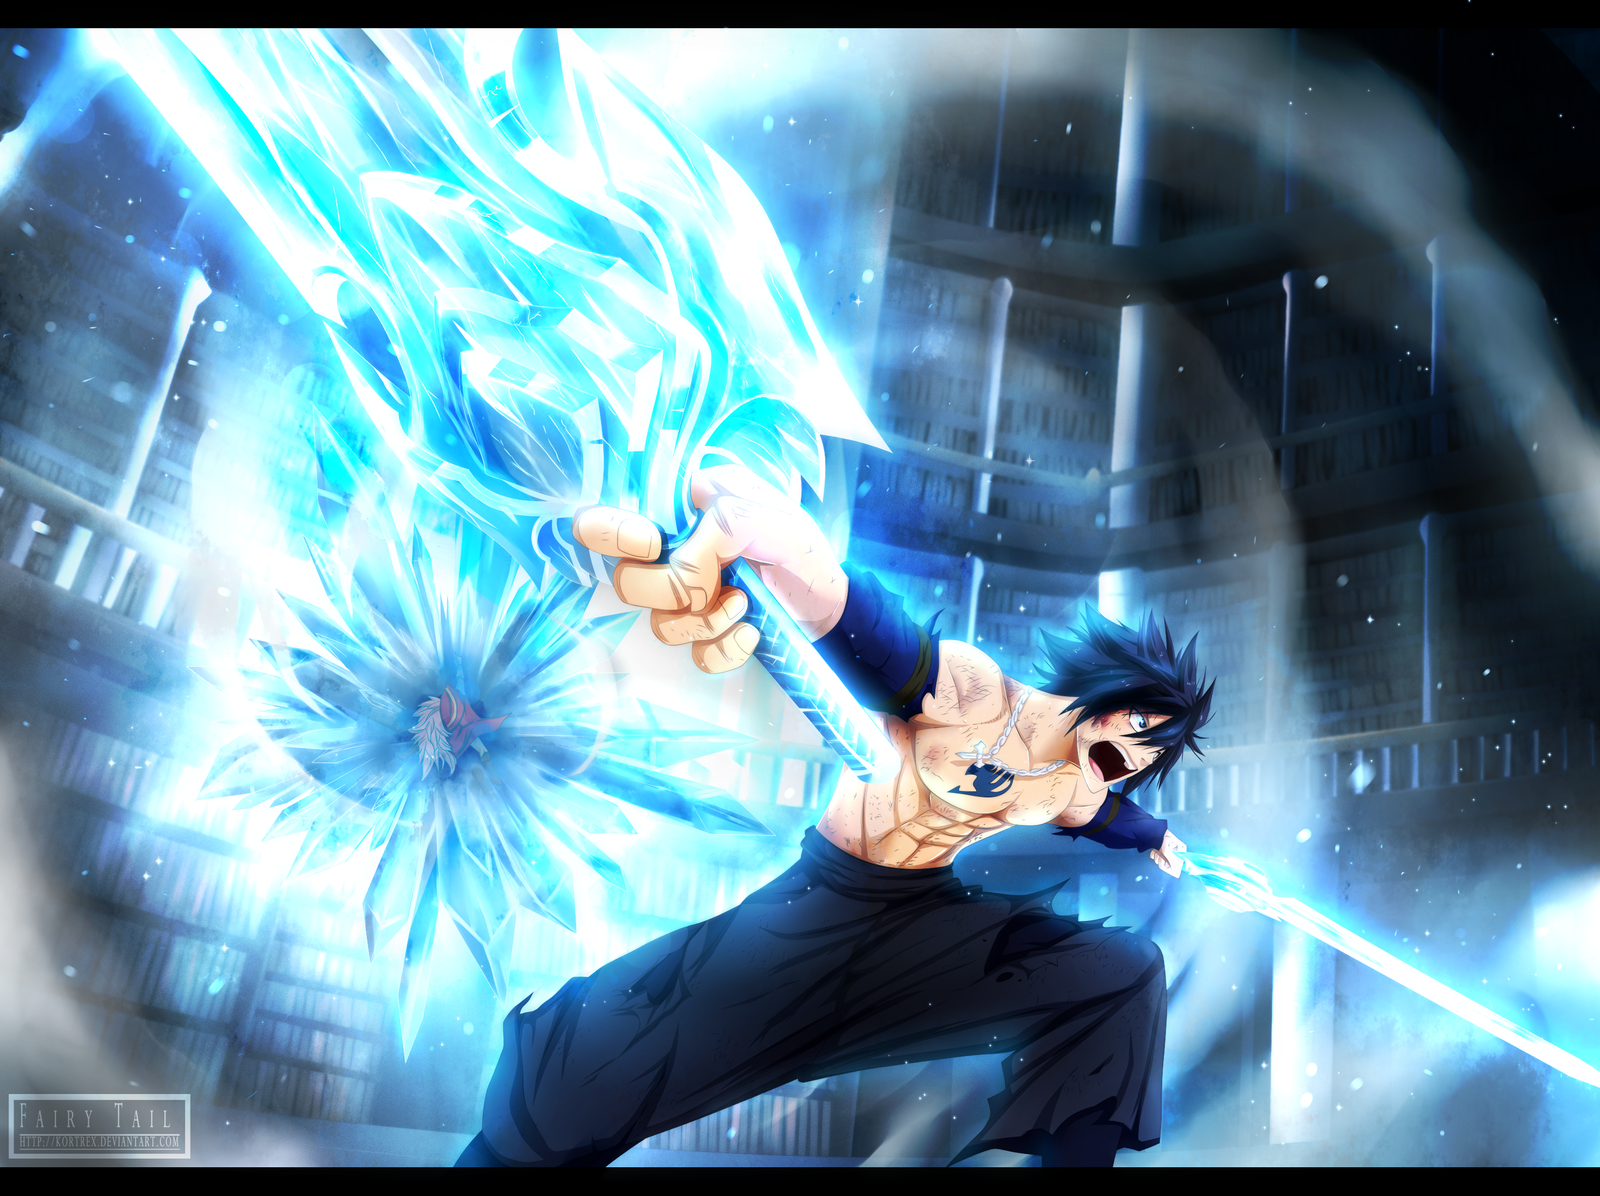 Fairy Tail chapter 306   Ice Bringer by Kortrex 1600x1196